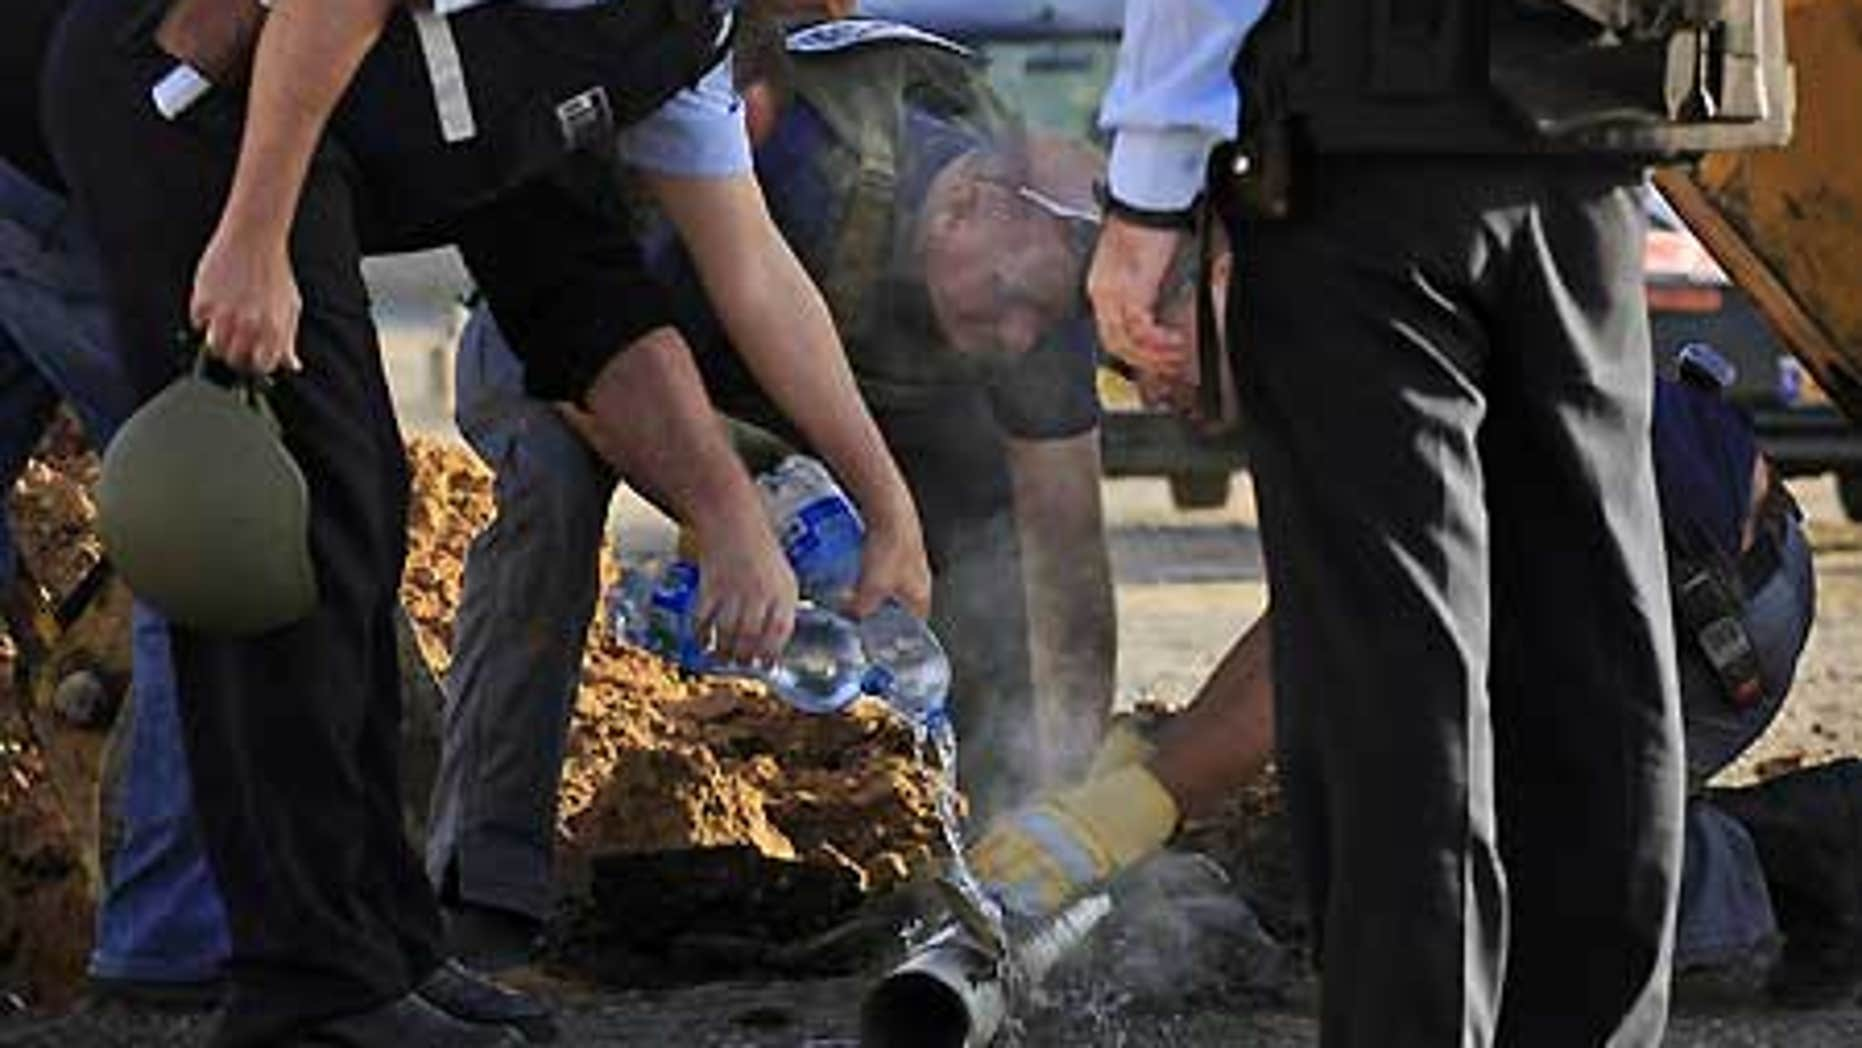 Feb. 3: Israeli police examine the remains of a rocket fired by Palestinian militants from the Gaza Strip, in the southern Israeli city of Ashkelon.